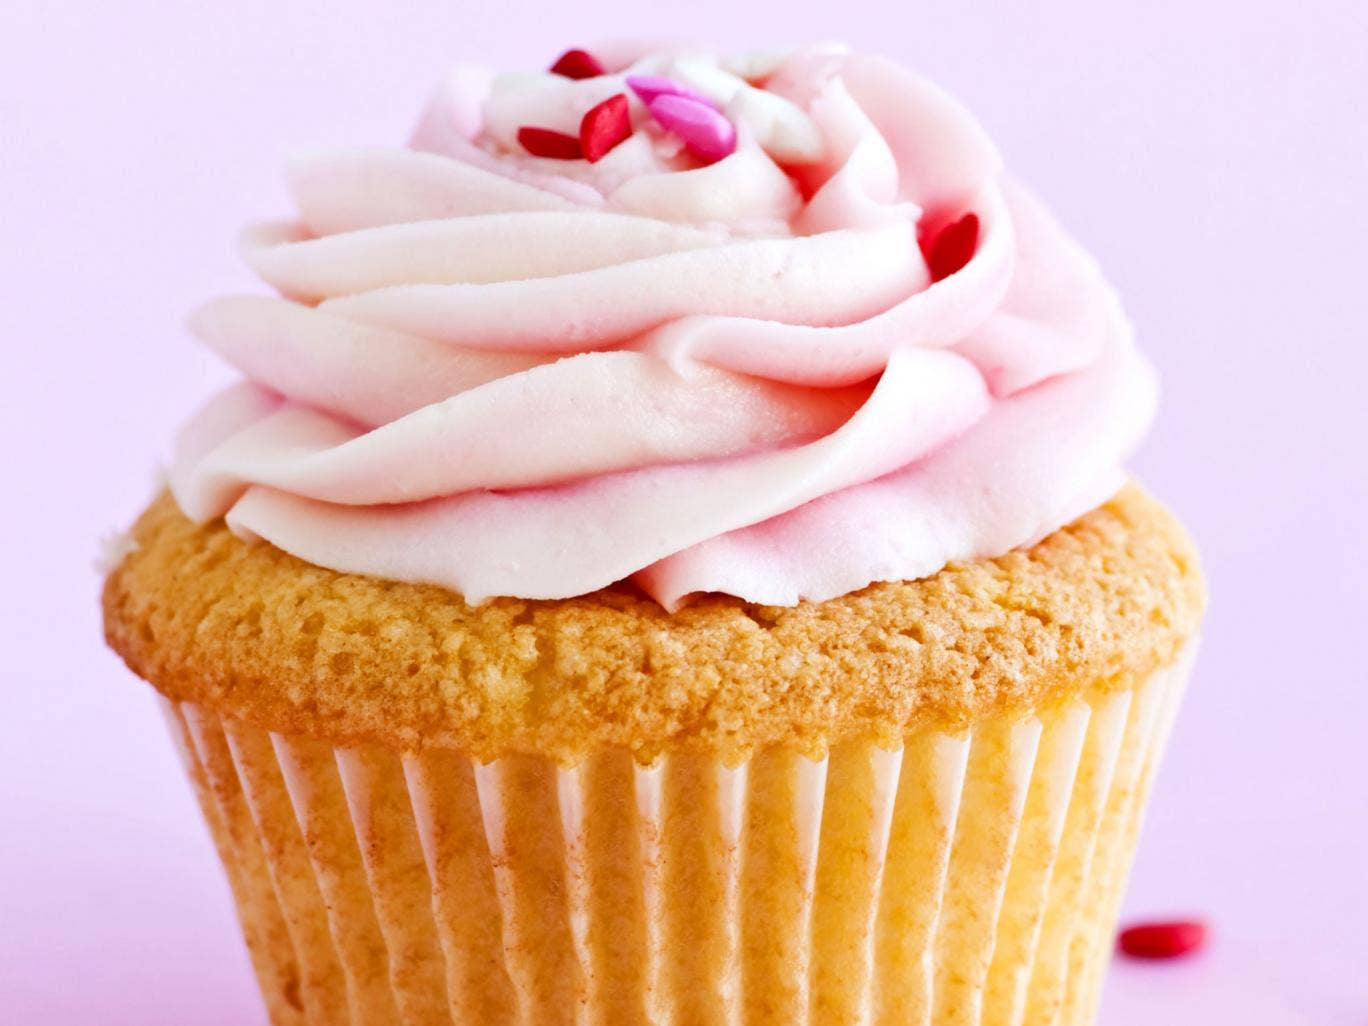 The reign of the cupcake may be at an end